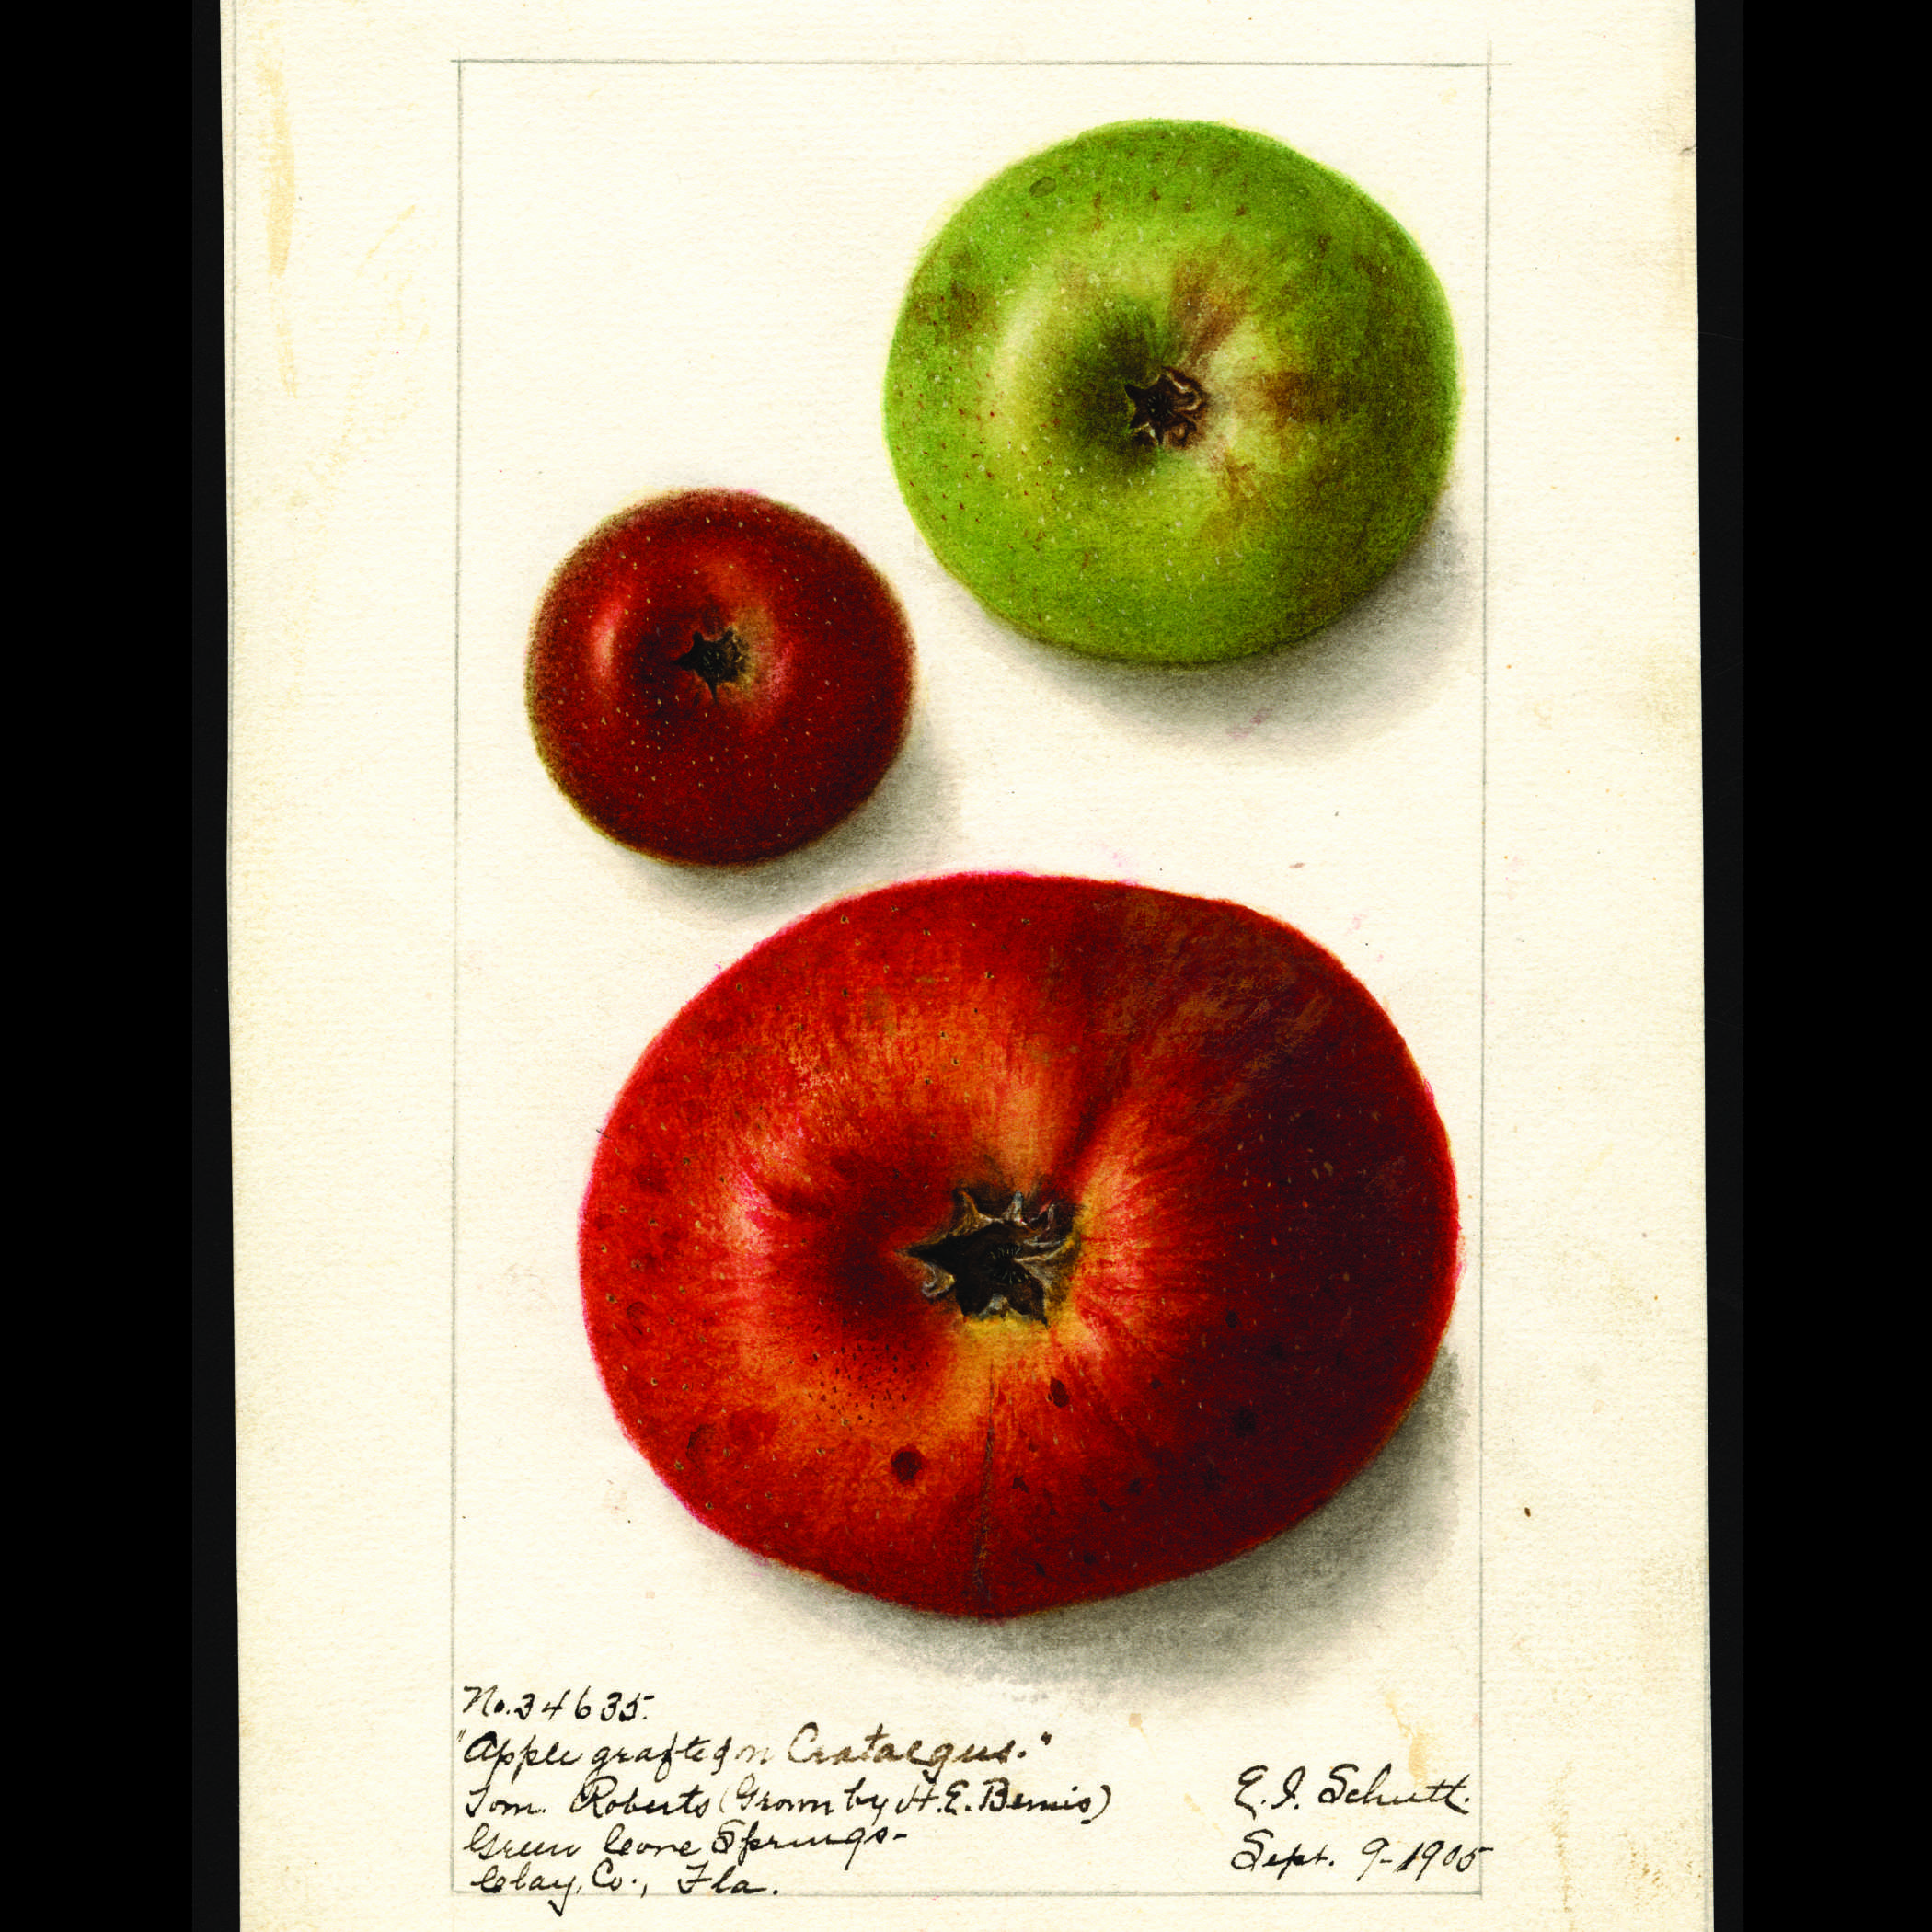 watercolor with three apples. a medium sized green apple, a small dark red apple, and a large red apple